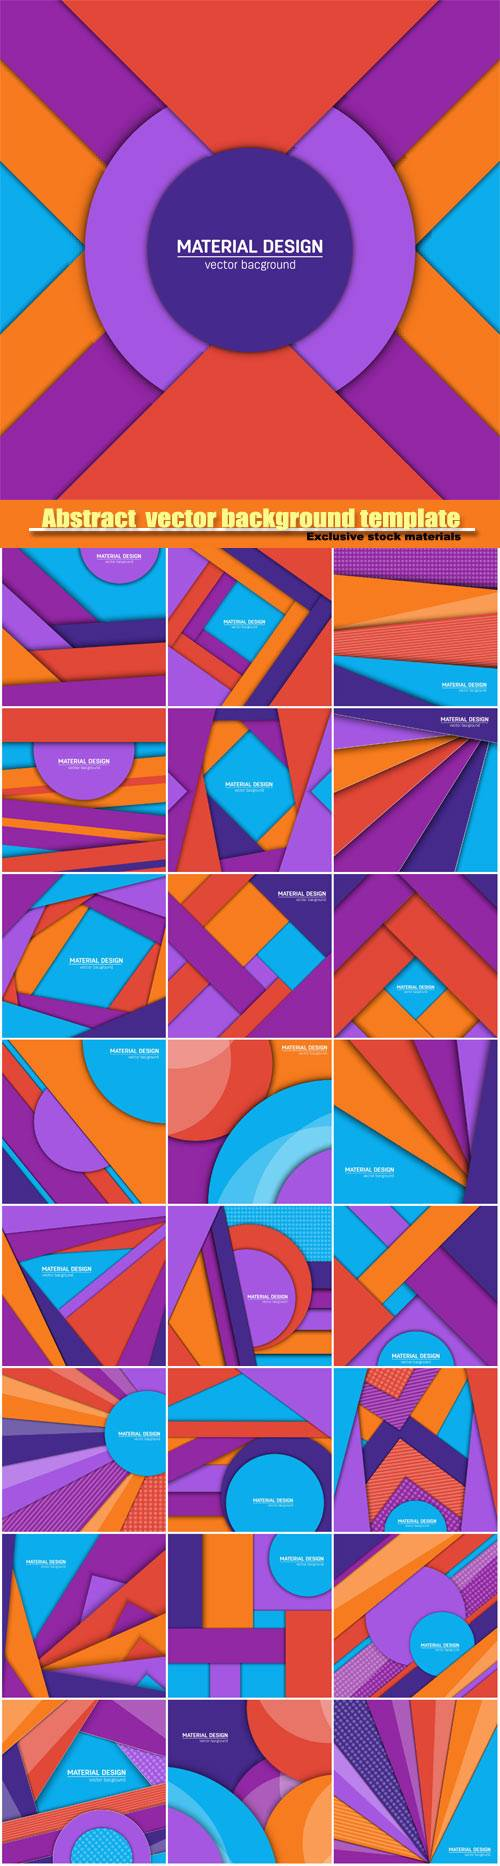 Abstract creative layout vector background template #4